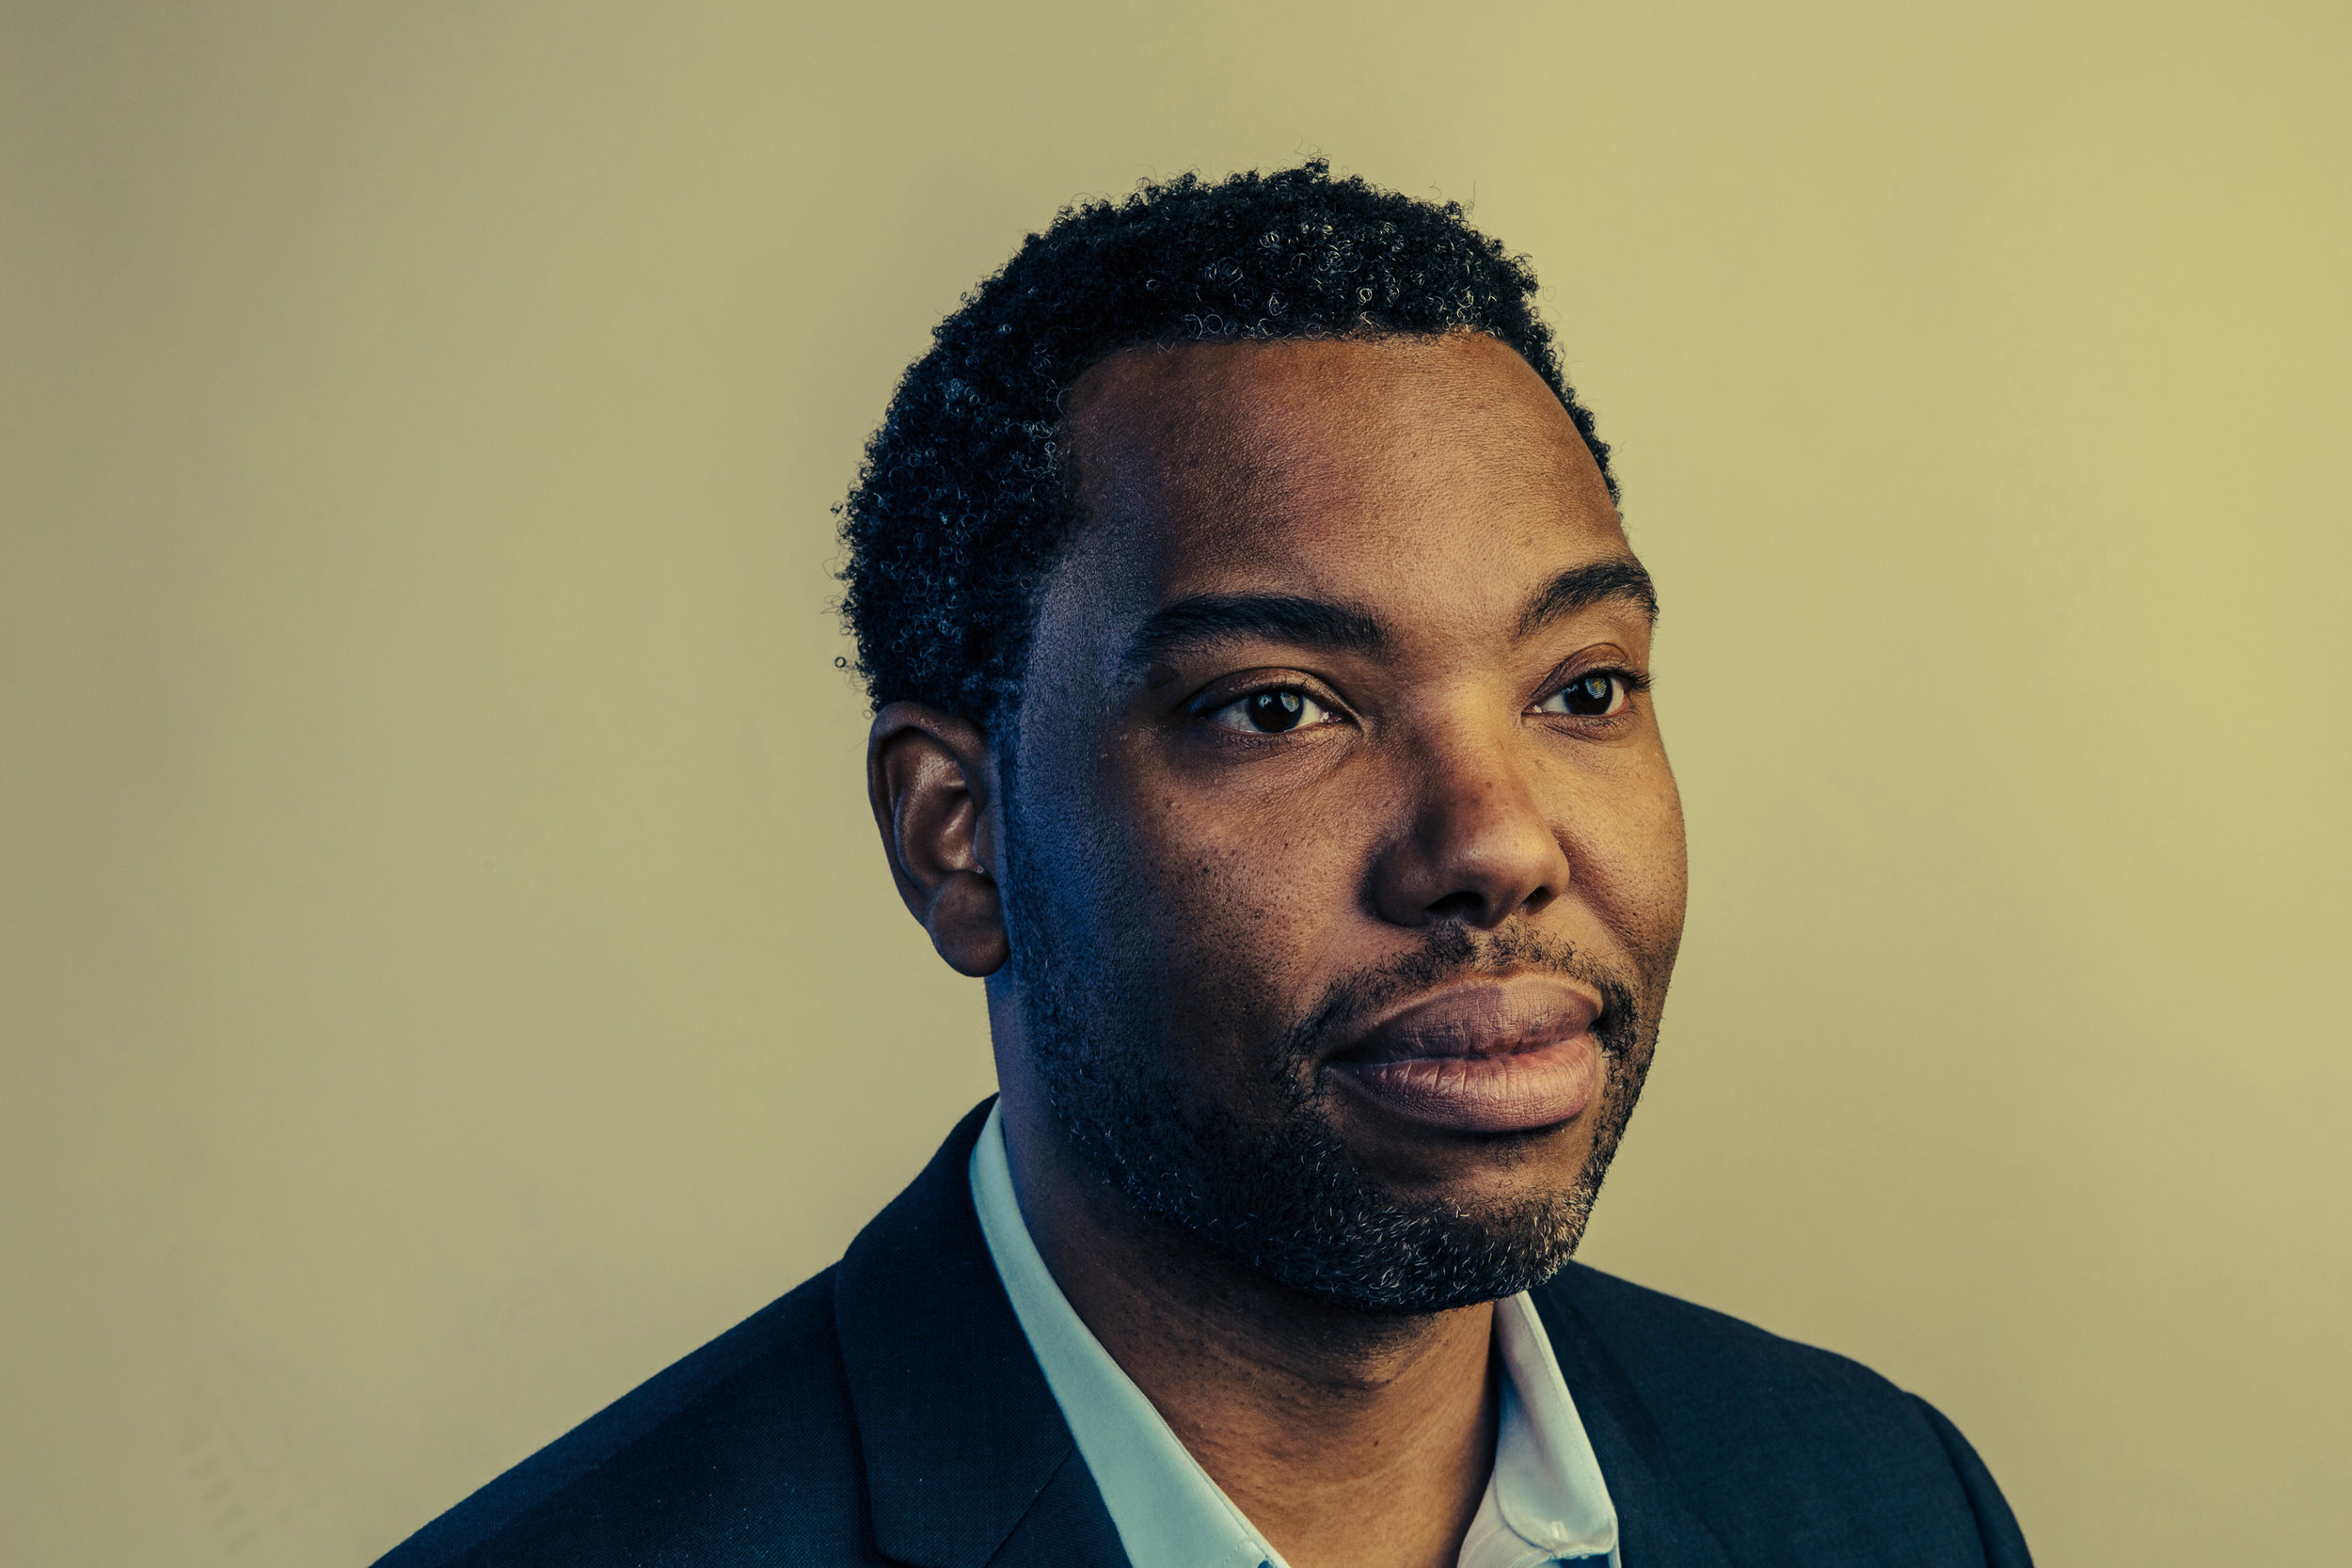 Ta-Nehisi Coates photographed by Bryan Stevenson for Time Magazine